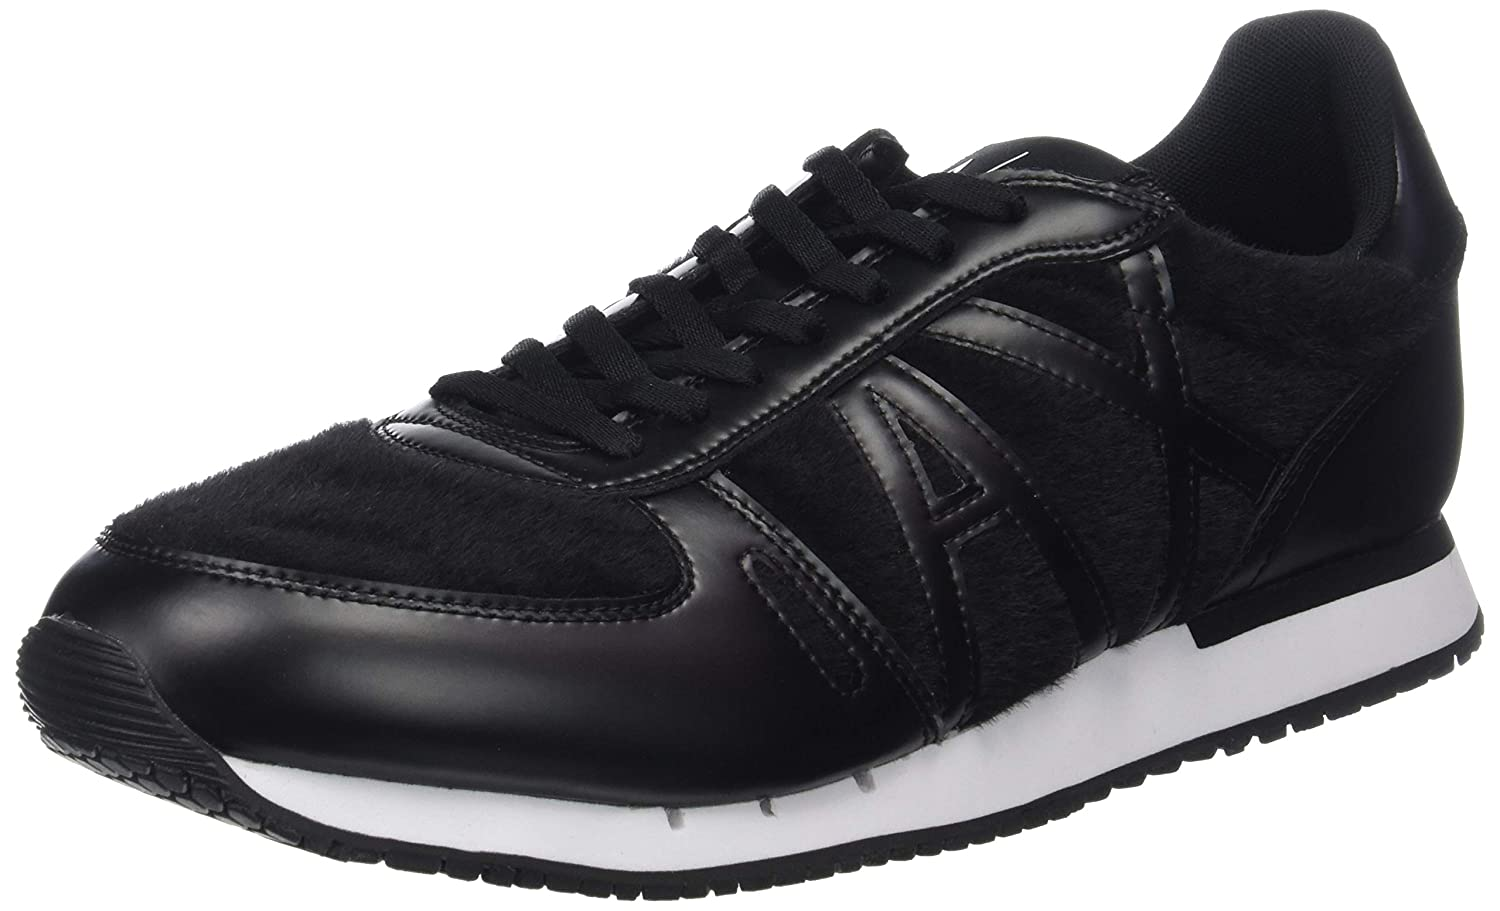 TALLA 42 EU. Armani Exchange Low-Top Sneaker, Zapatillas para Hombre